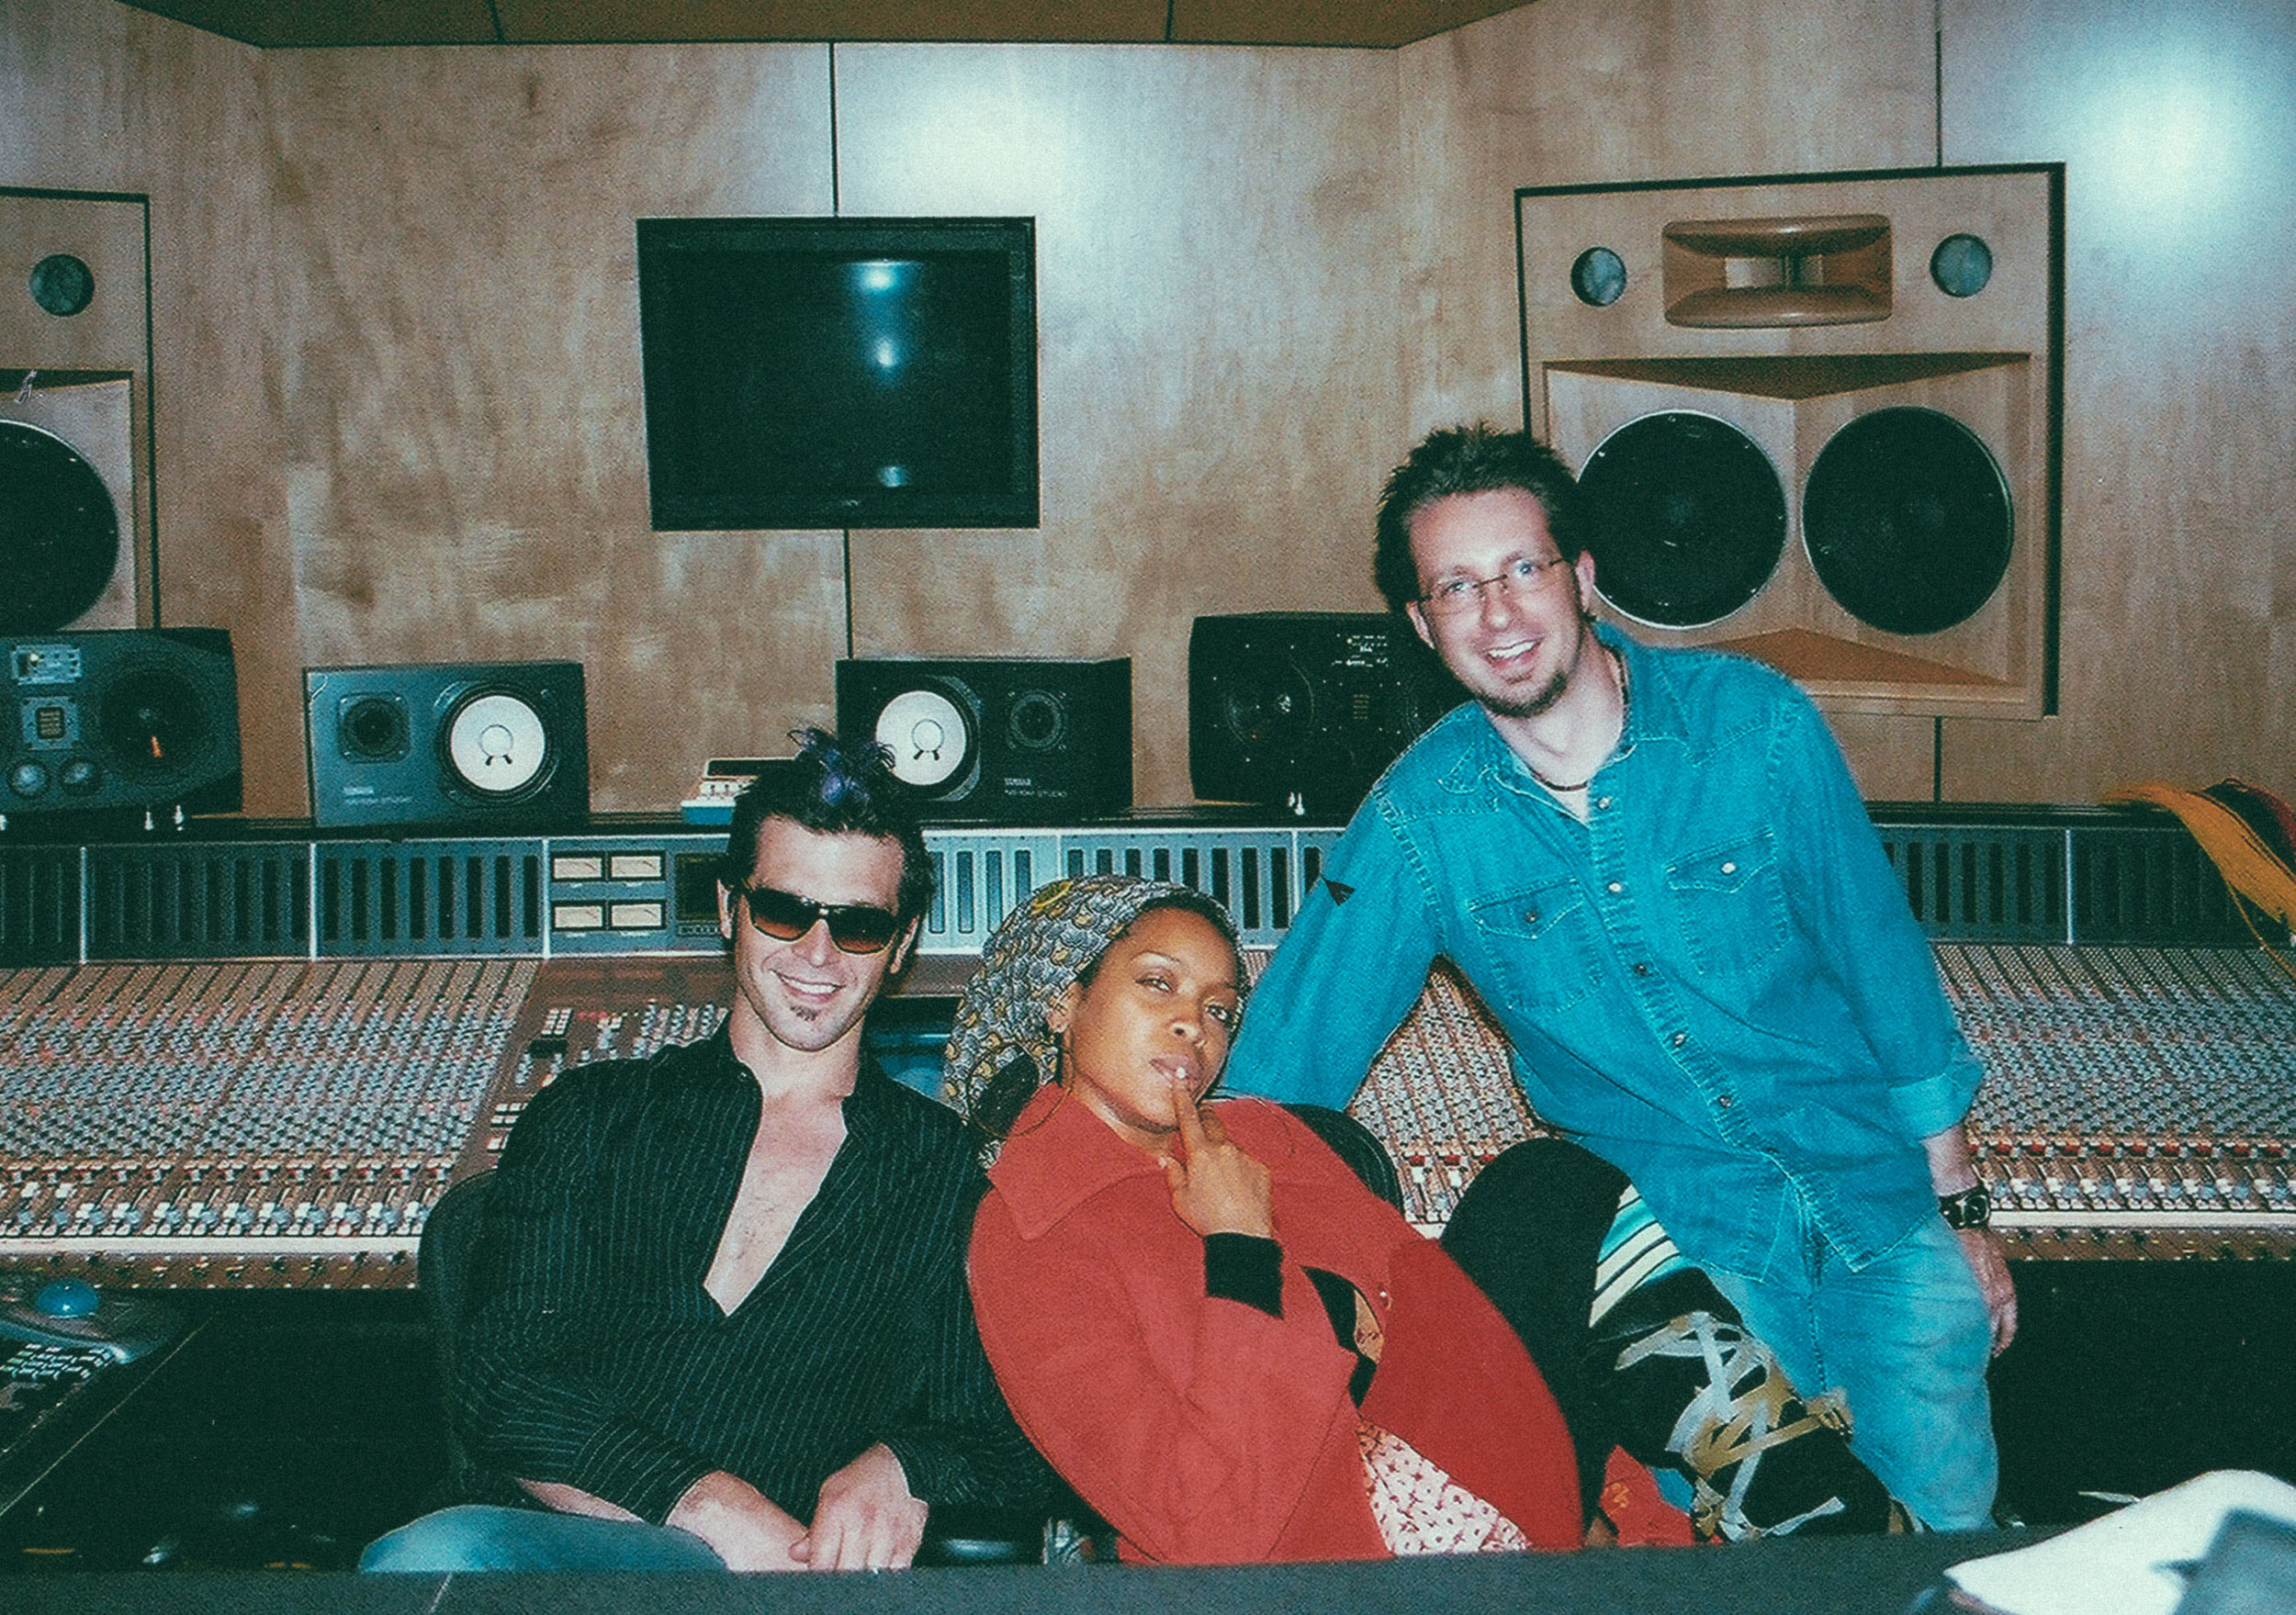 In session with Doyle Bramhall II and Erykah Badu at Luminous Sound